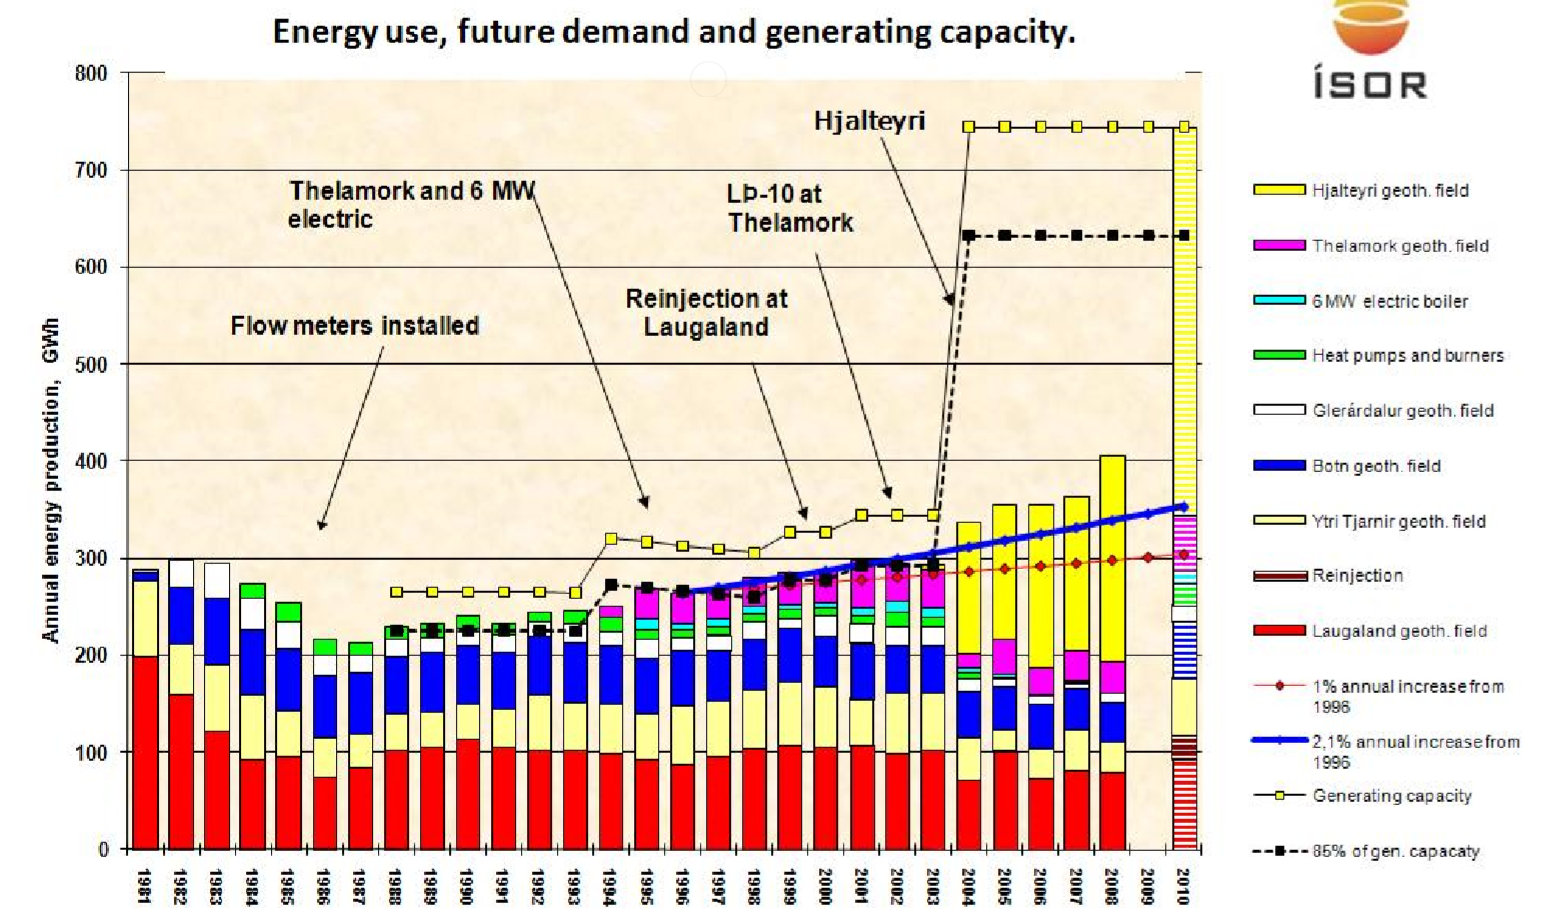 Chart of thermal energy use in Eyjafjordur since 1981. Note that total system capacity (yellow dots) barely exceeded usage (bars) until the Hjalteri field came online in 2003. Source: Flovenz et al. (2010).